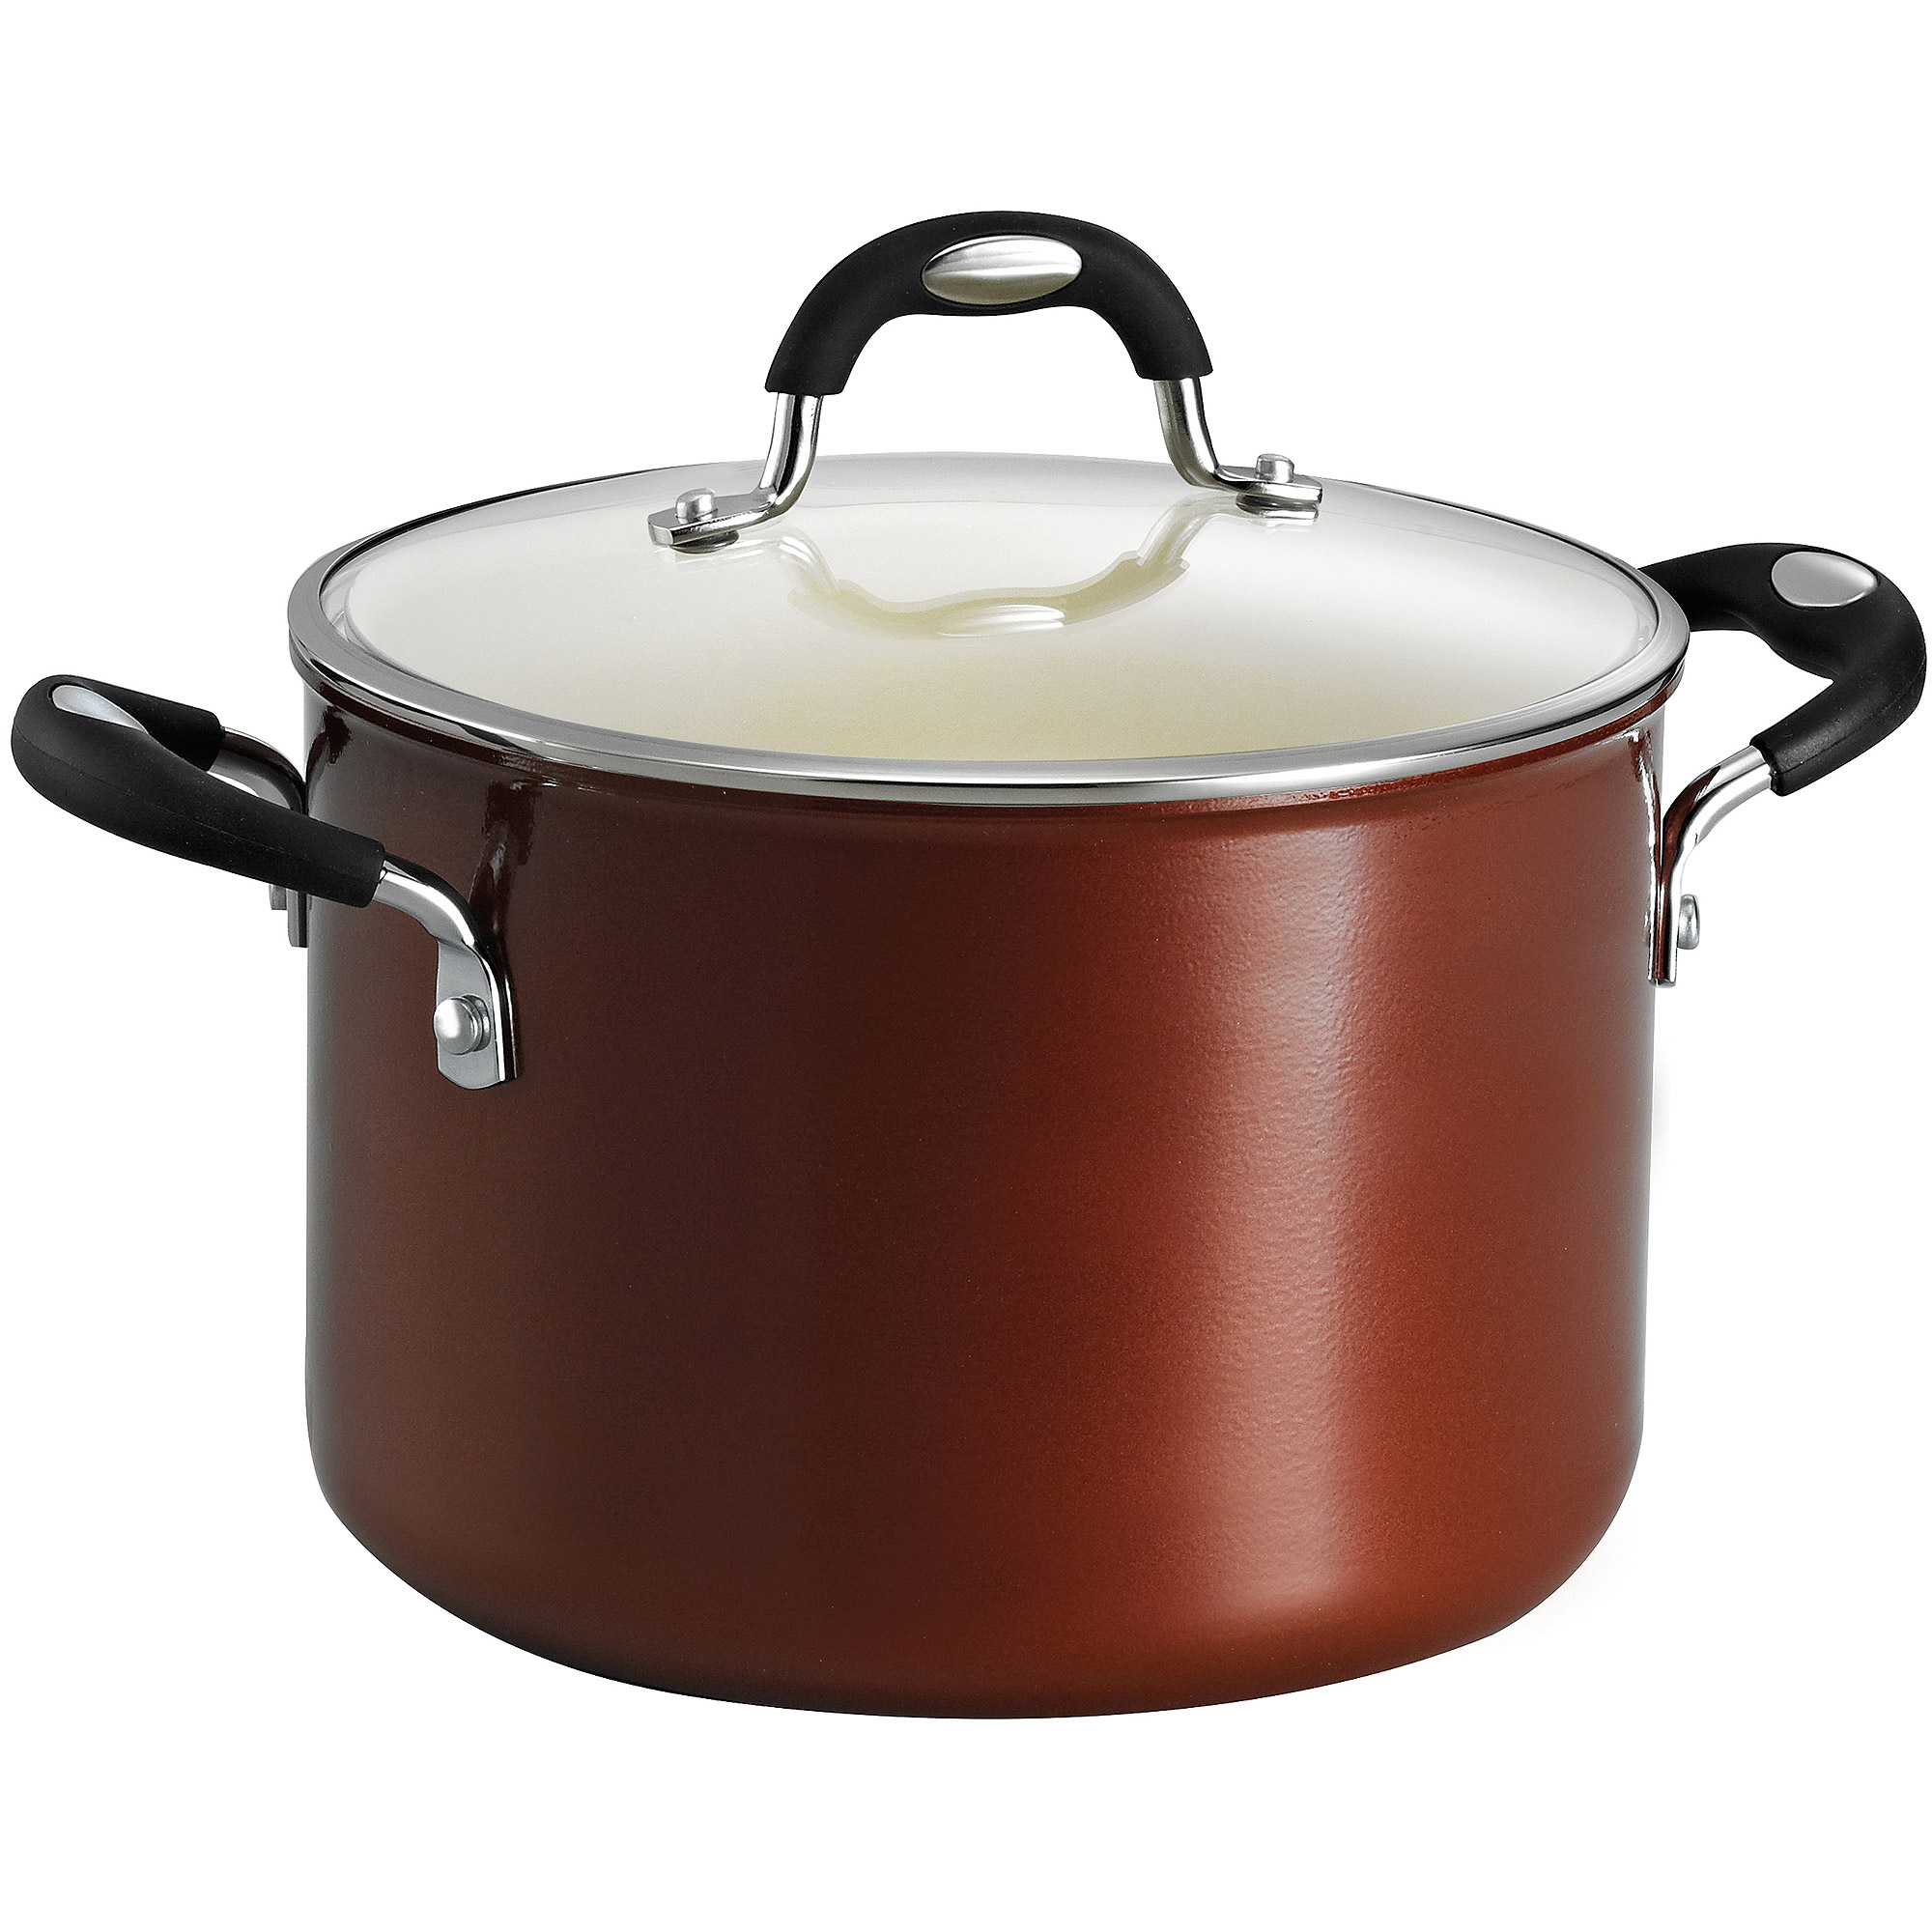 Tramontina Style 6-Quart Ceramic Nonstick Covered Stock Pot